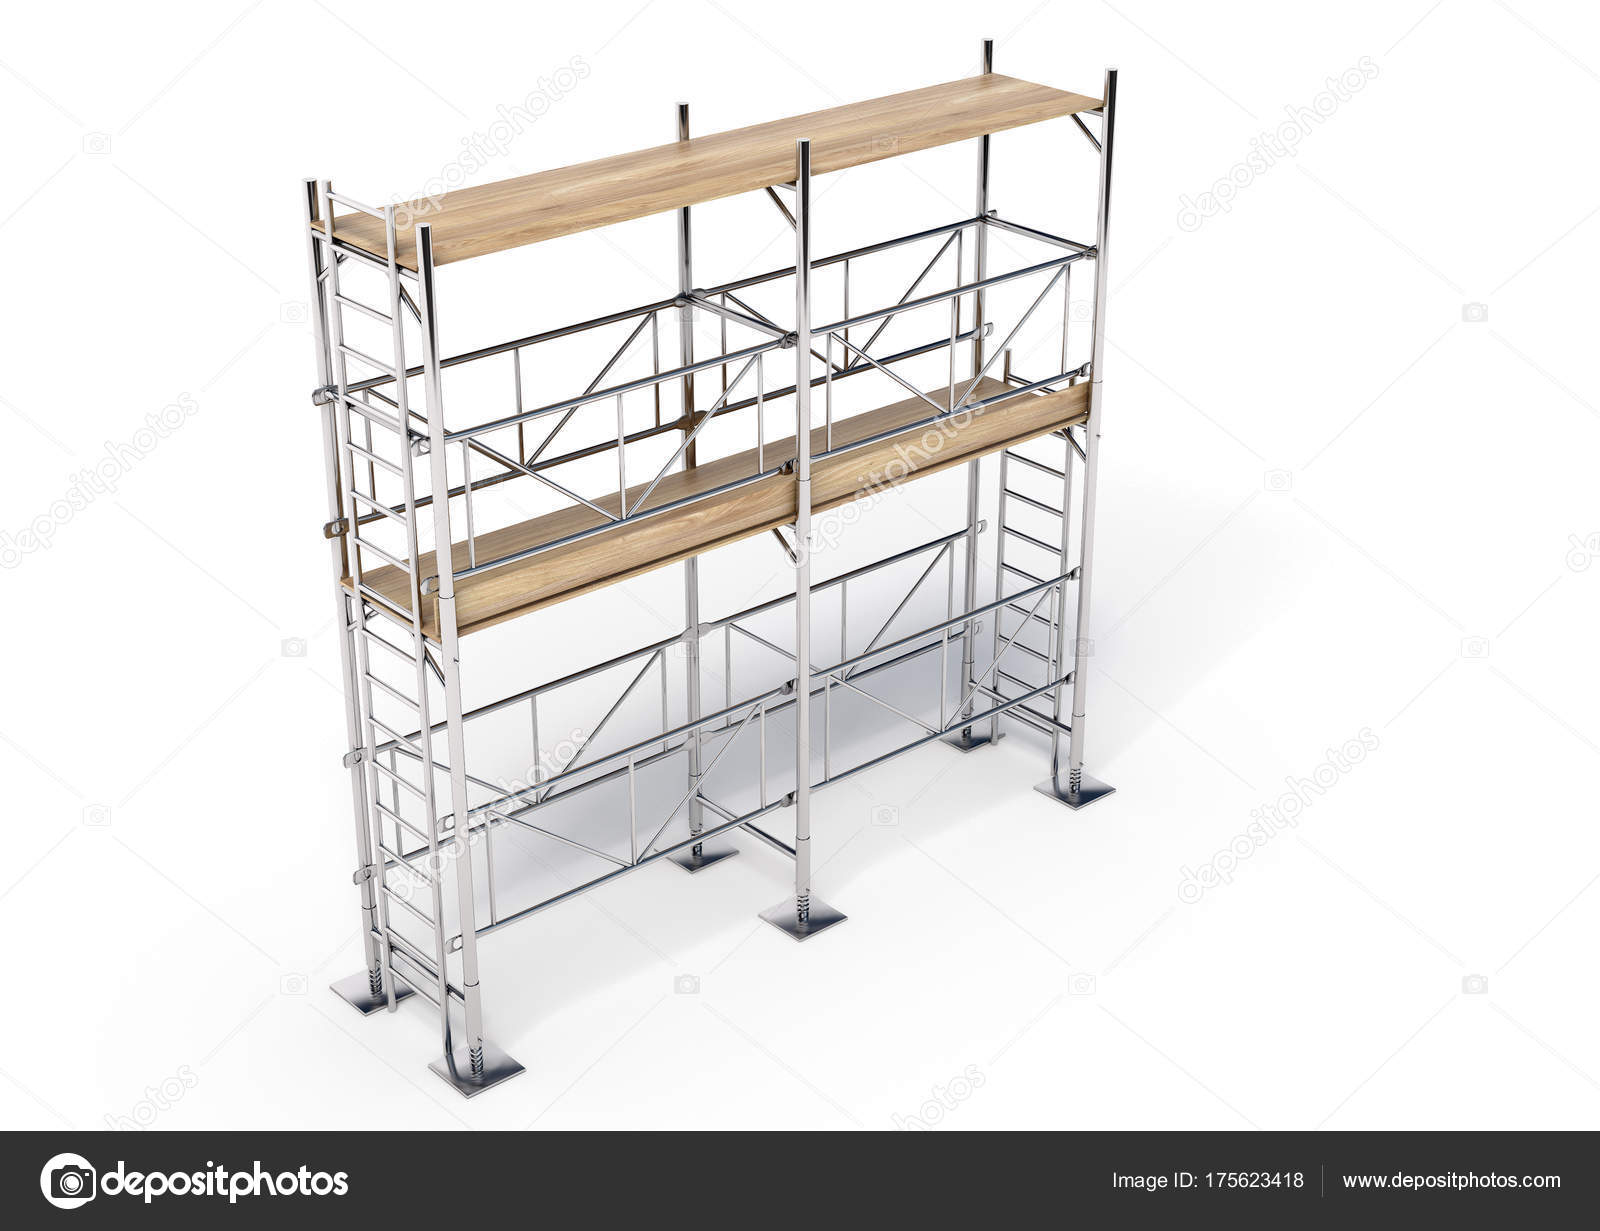 Scaffold Illustration Made Software — Stock Photo